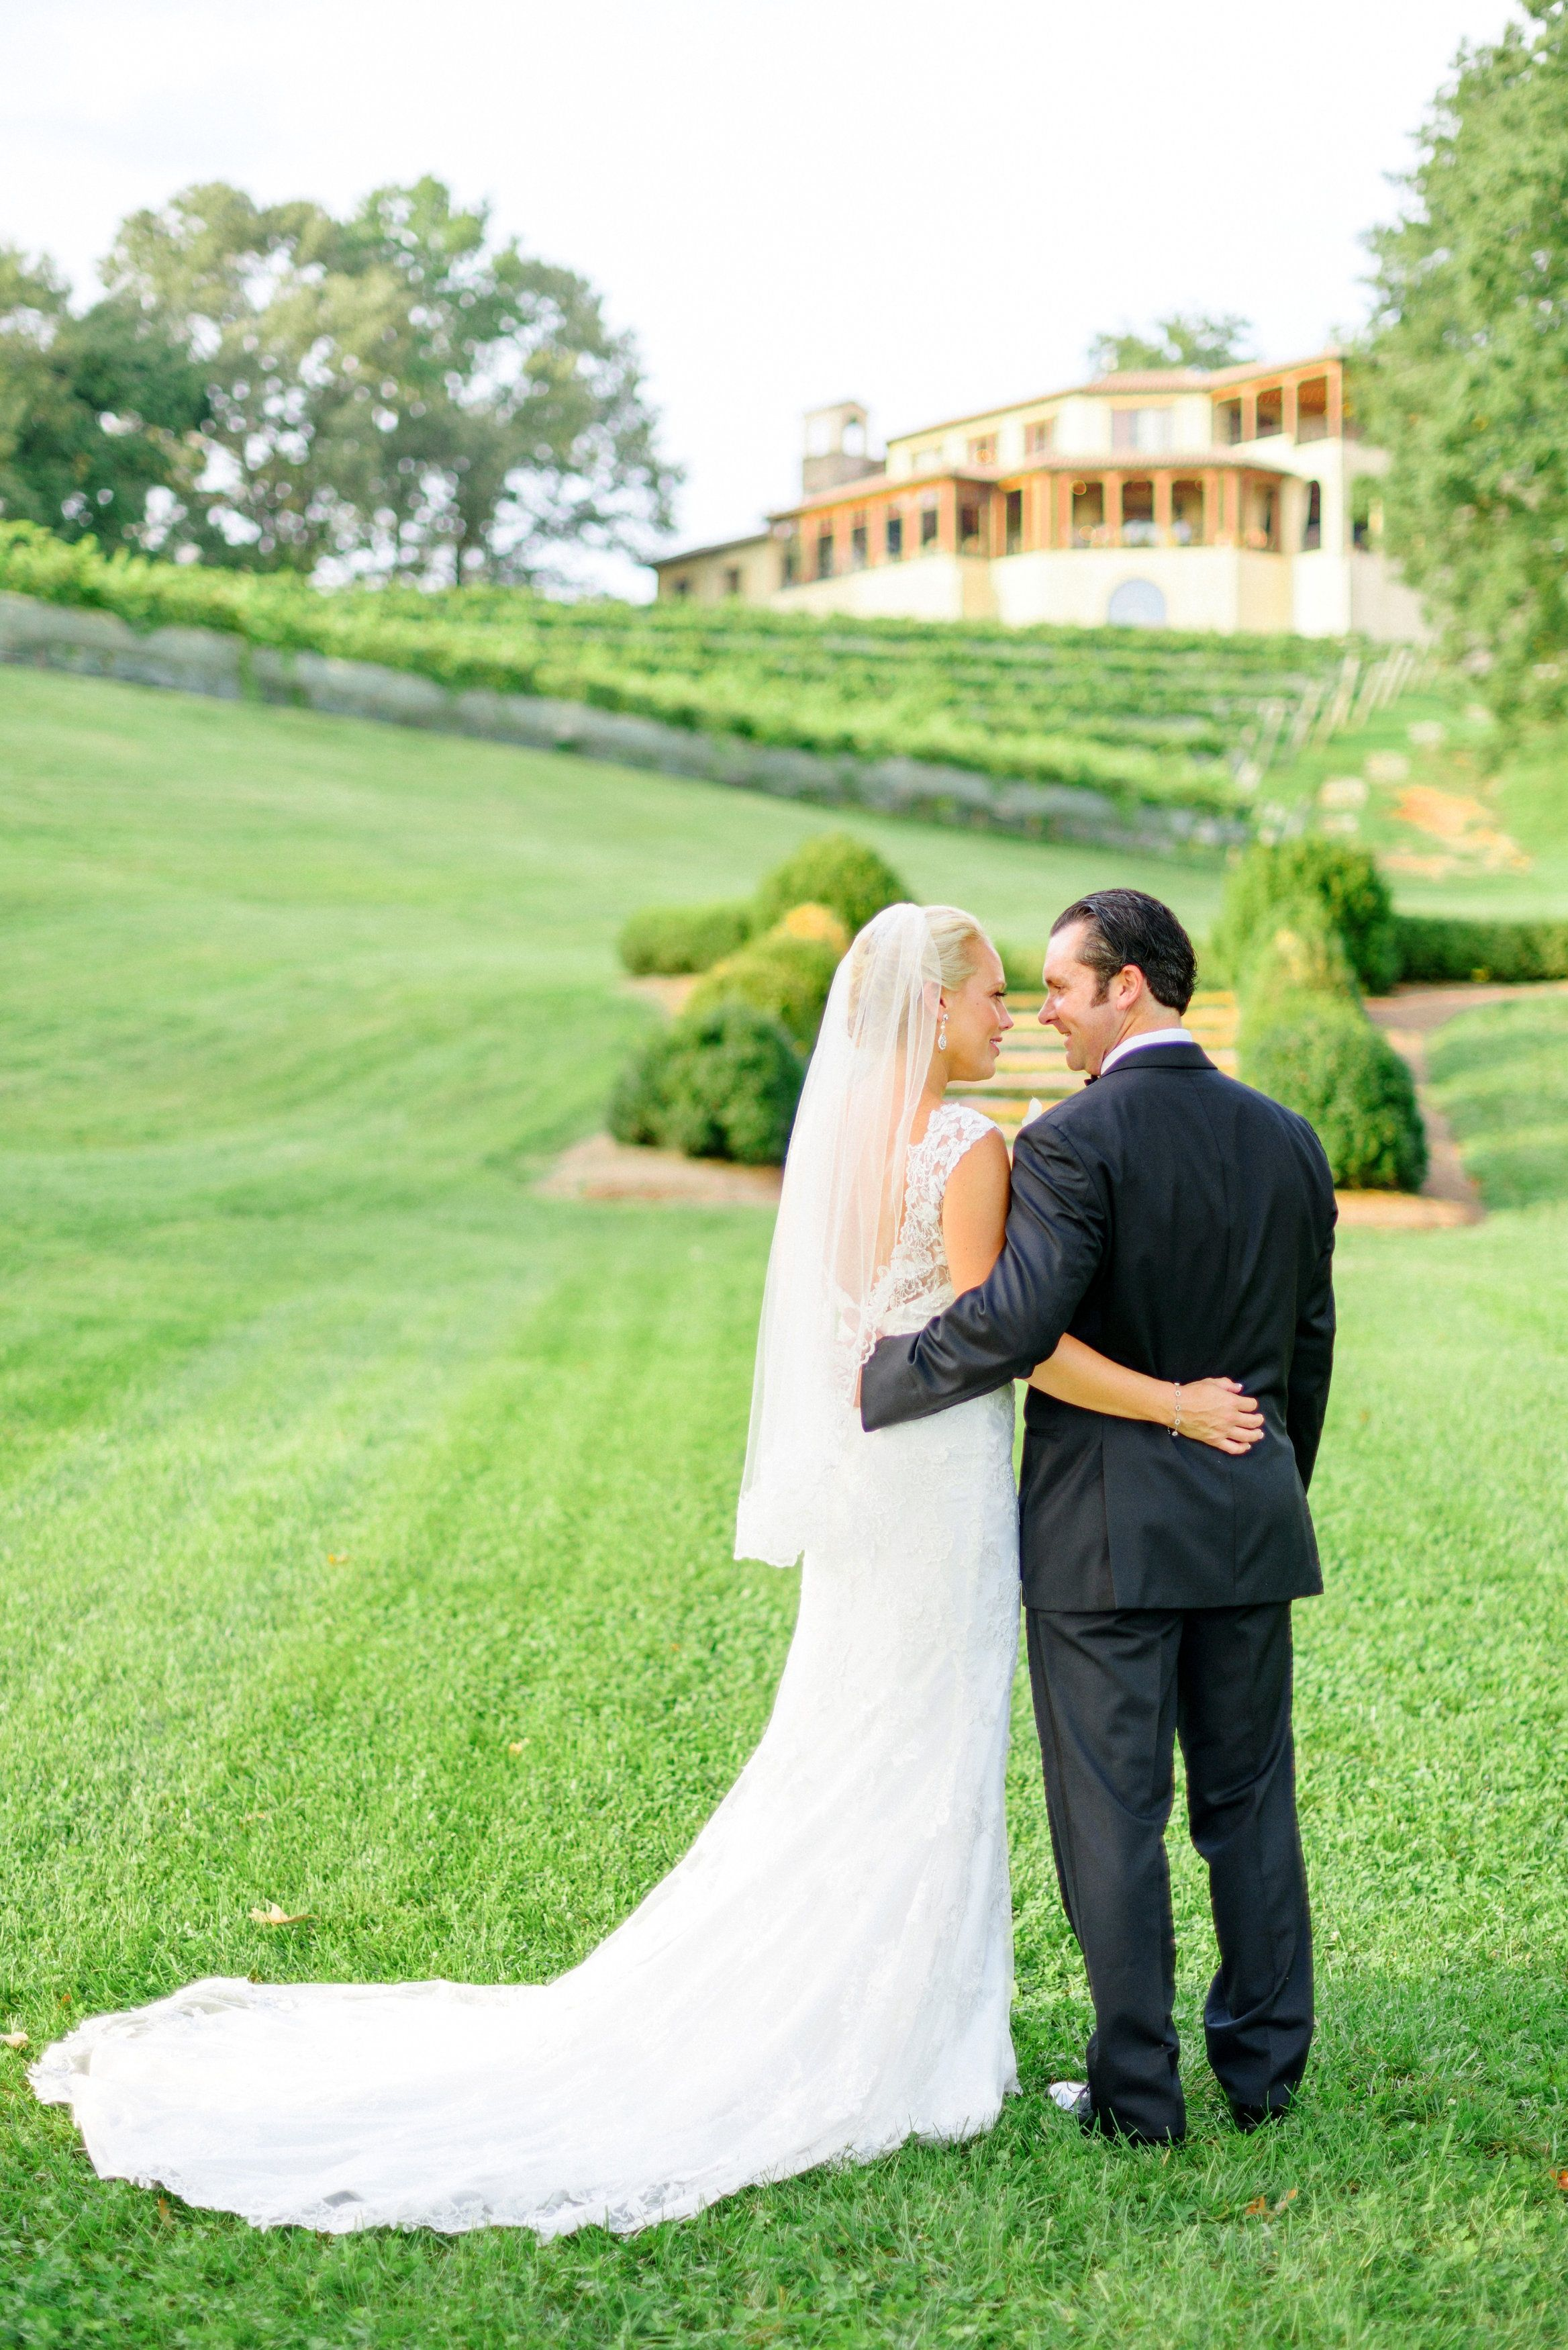 A Formal, Vineyard Wedding at Montaluce Winery in